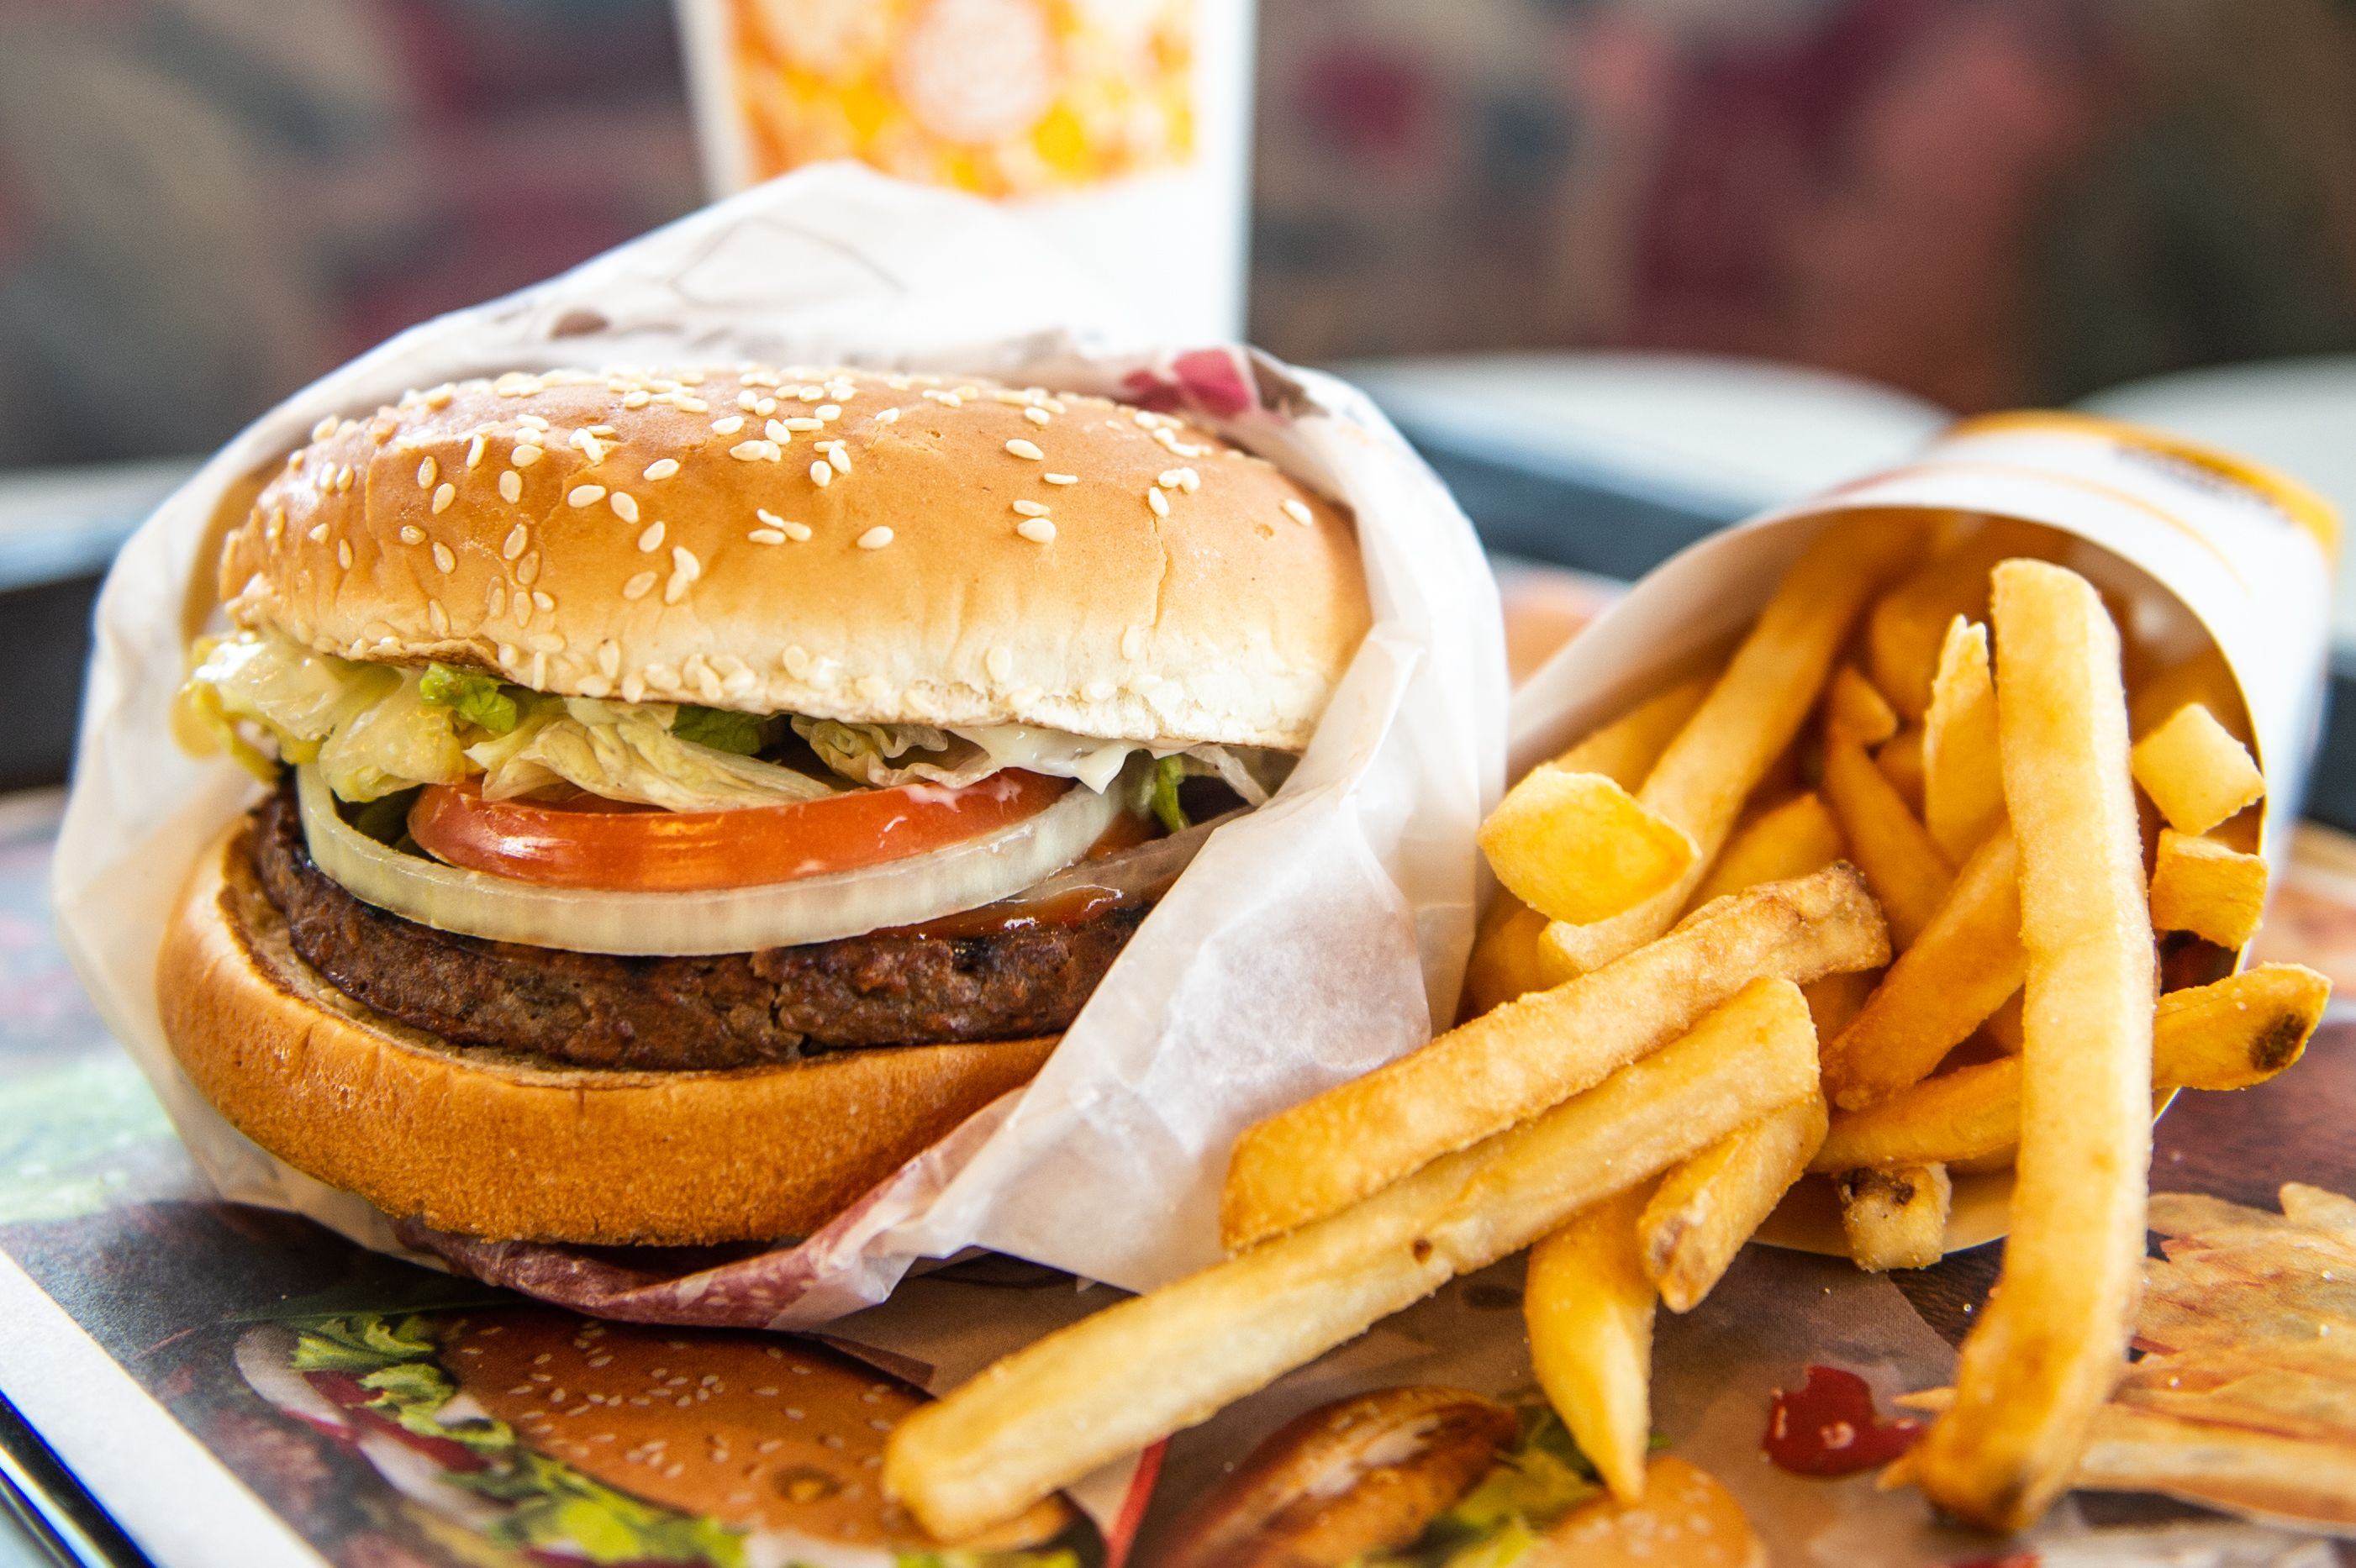 Is Burger King's Impossible Whopper Healthy? Nutrition & Calories